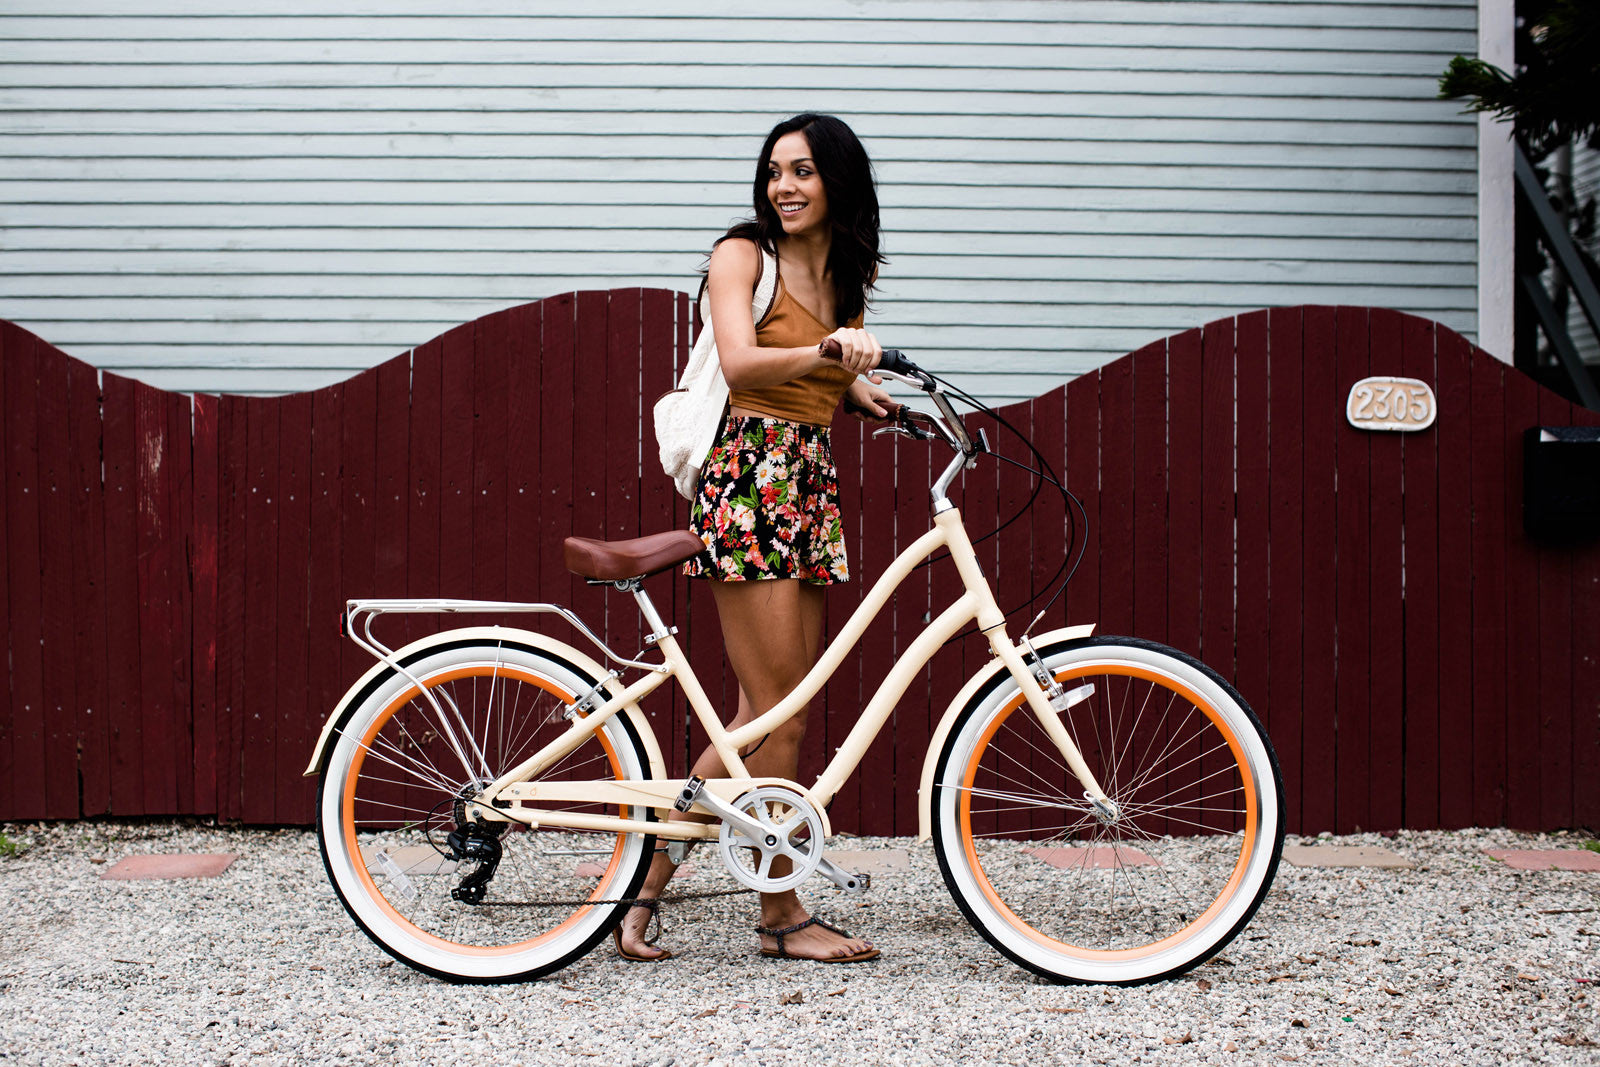 What Are the Best Rated Cruiser Bikes?